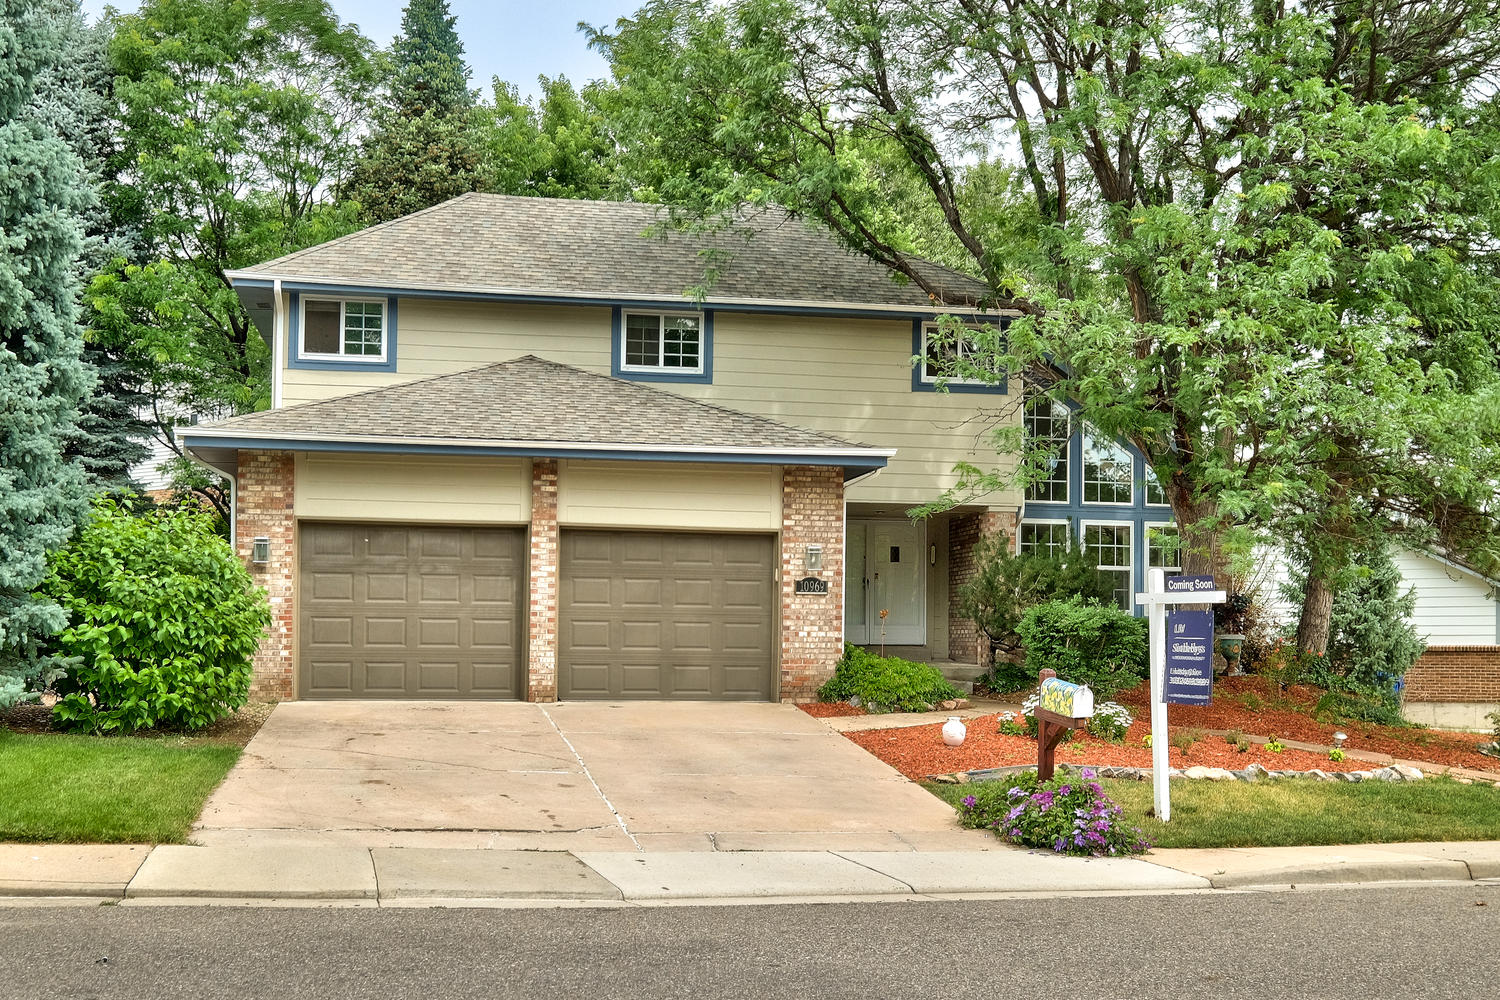 10969 E Maplewood Dr, Englewood, CO 80111